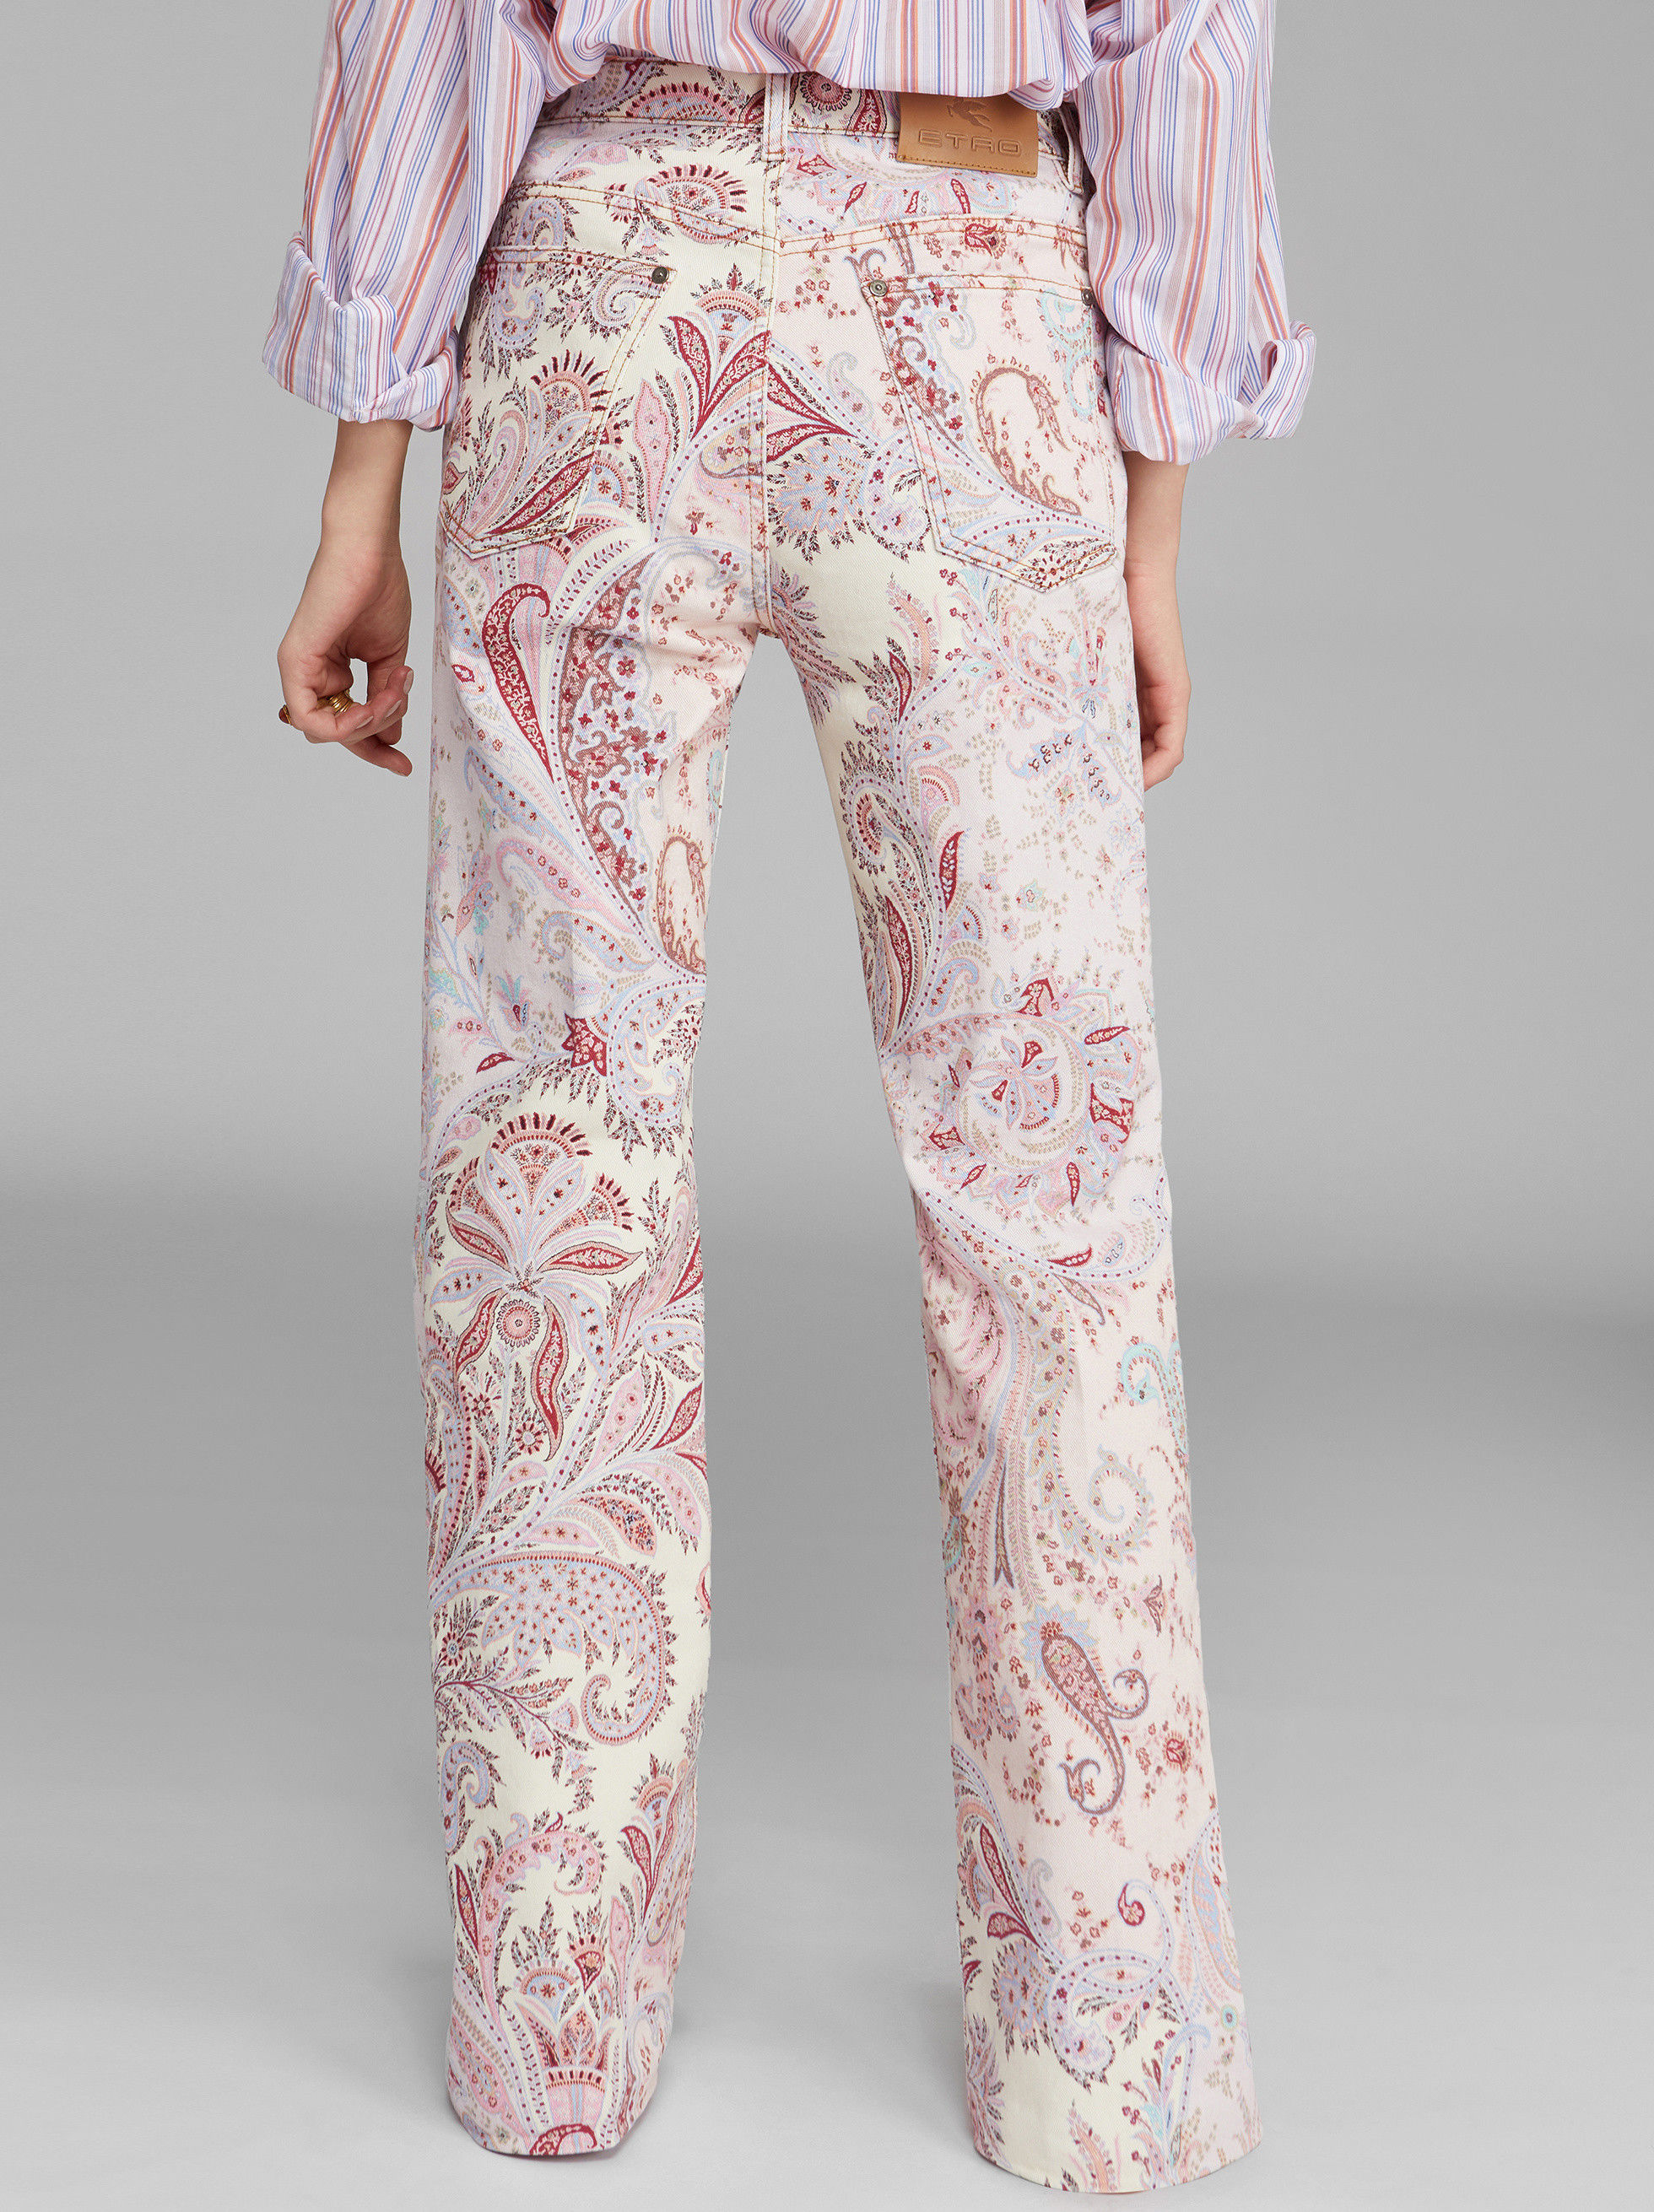 FLARED JEANS WITH FLORAL PAISLEY PRINT